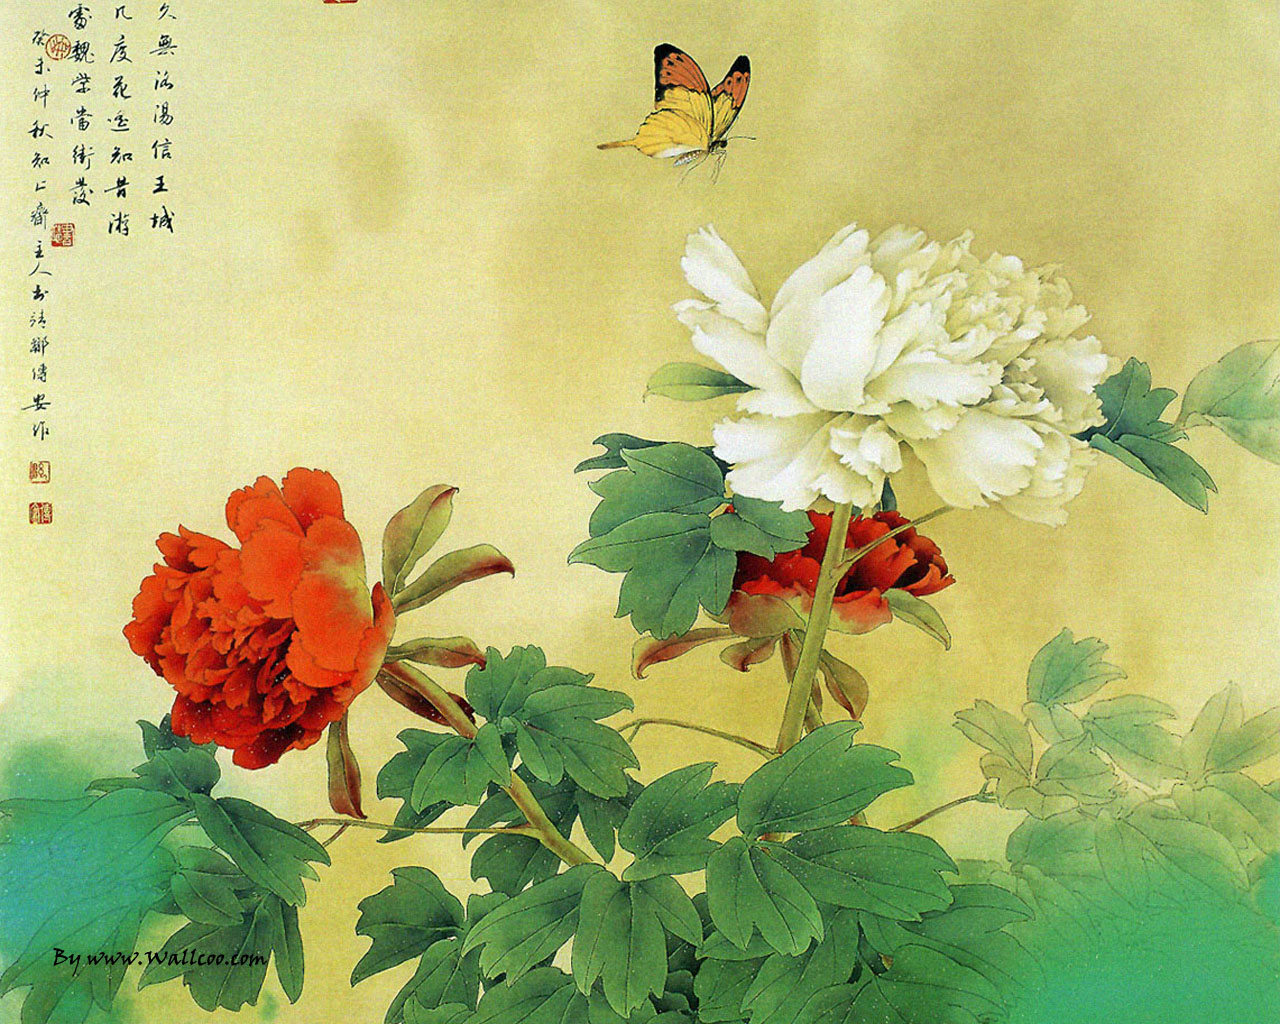 Chinese Paintings Chinese Gongbi Paintings Flower and Bird 1280x1024